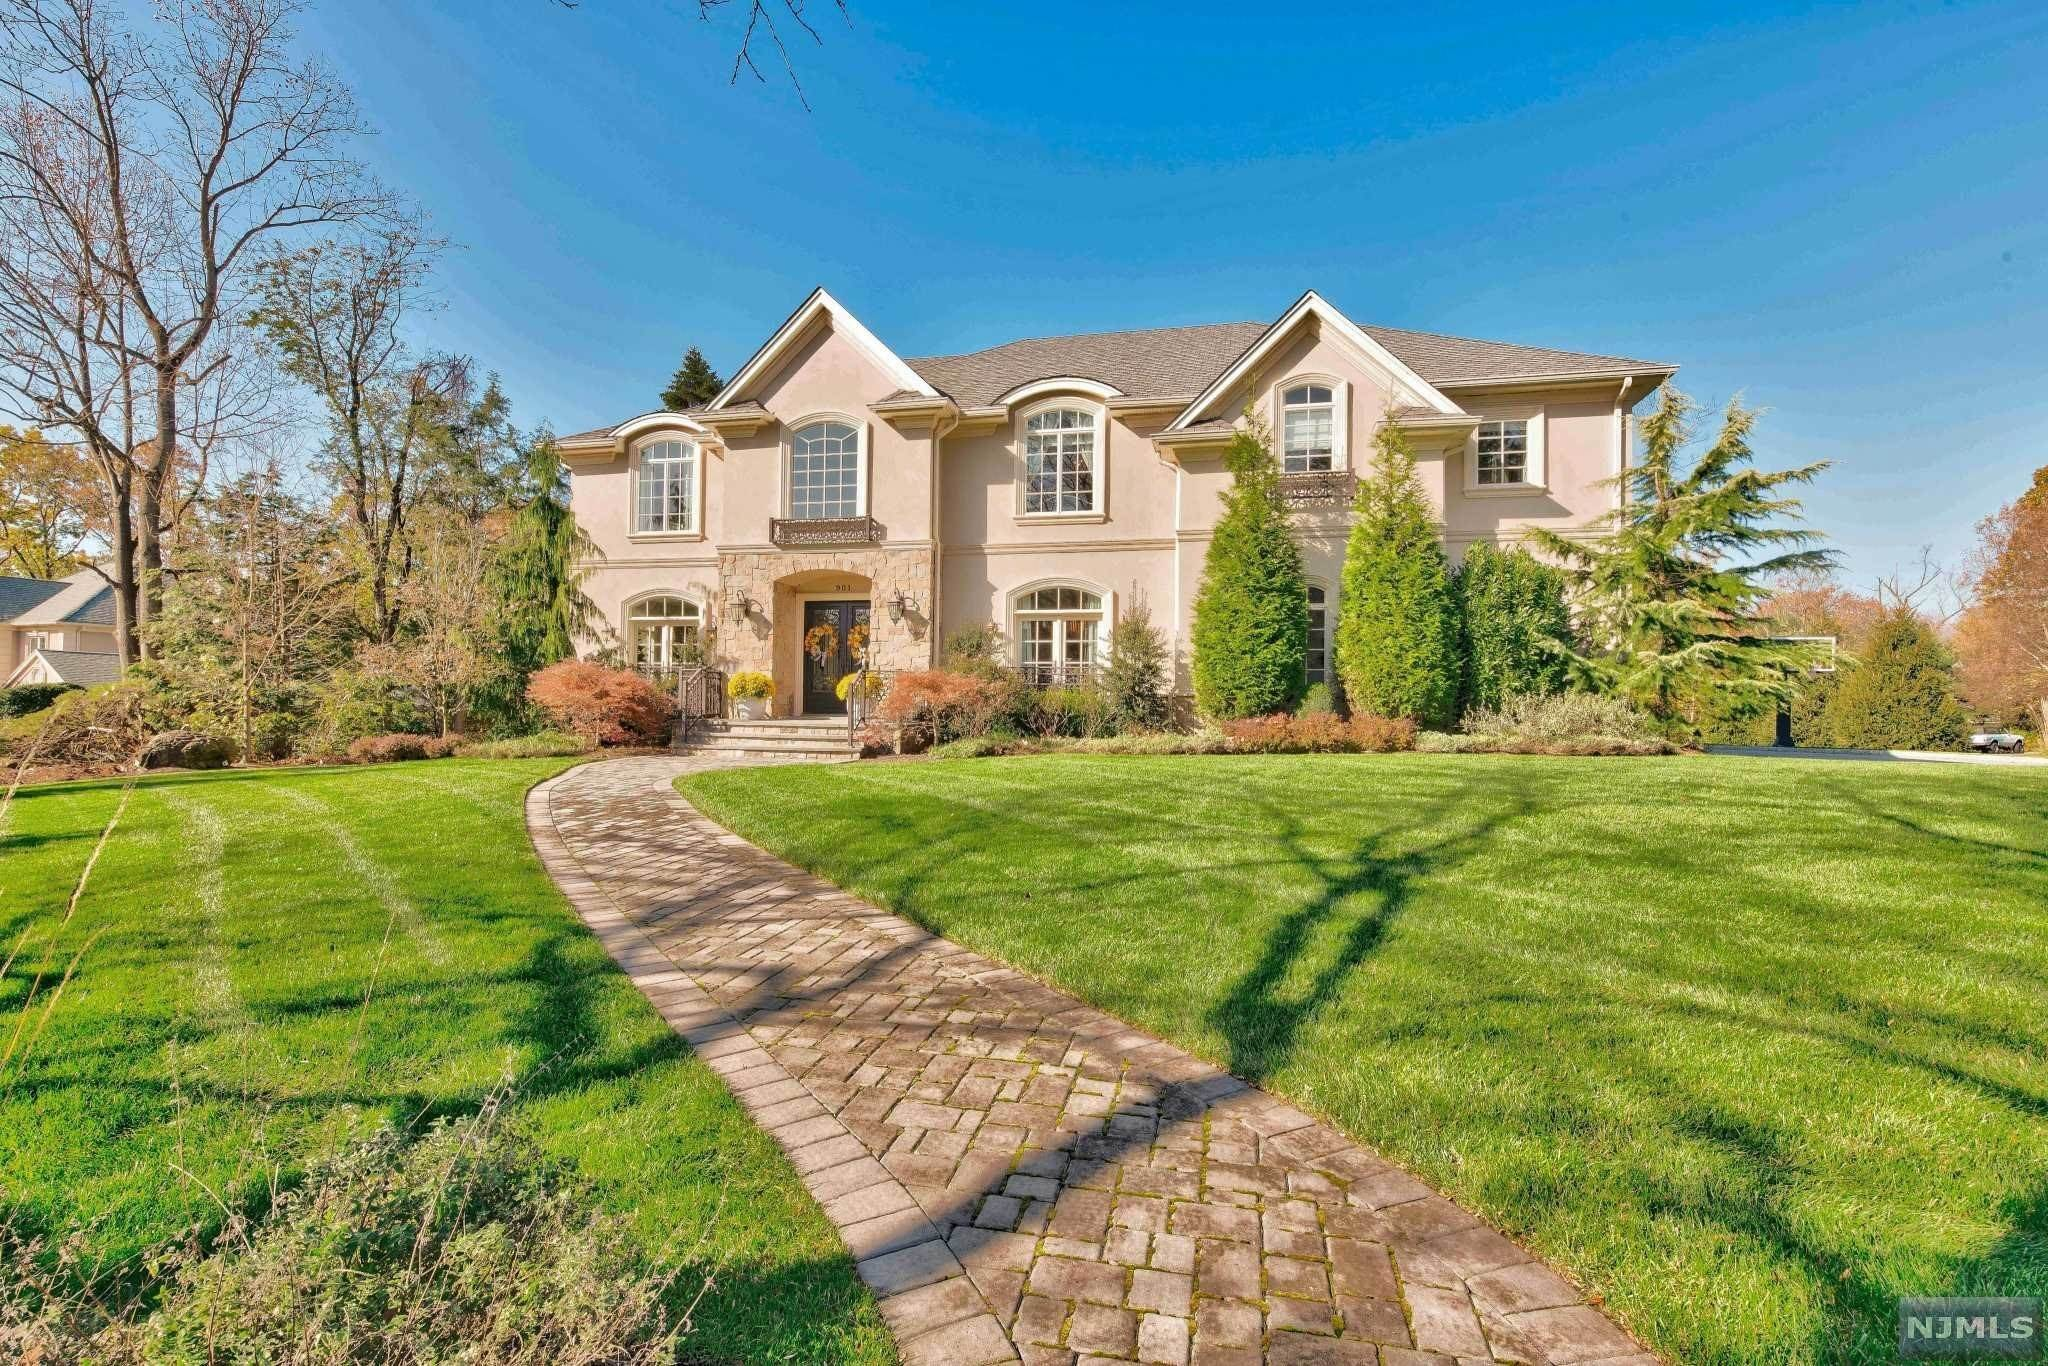 Single Family Home for Sale at 901 Pinecroft Court Franklin Lakes, New Jersey, 07417 United States